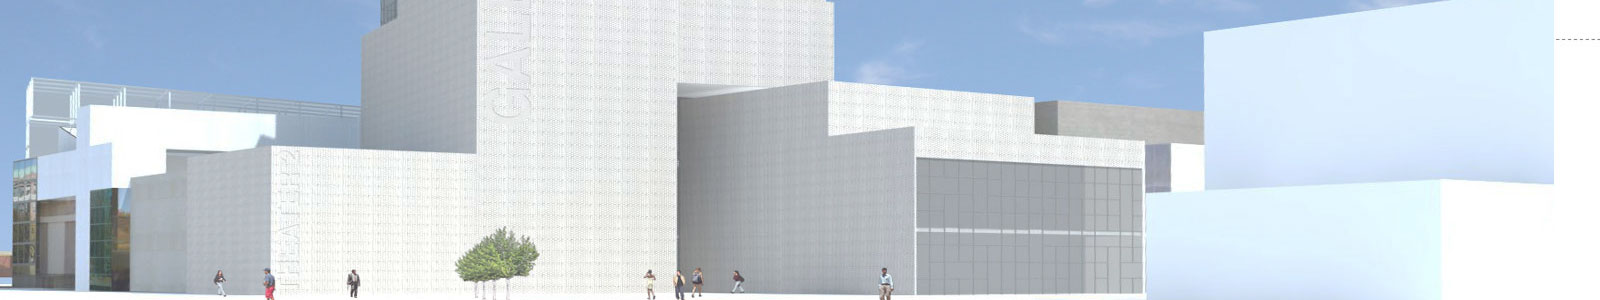 WEXNER CENTER TOWER